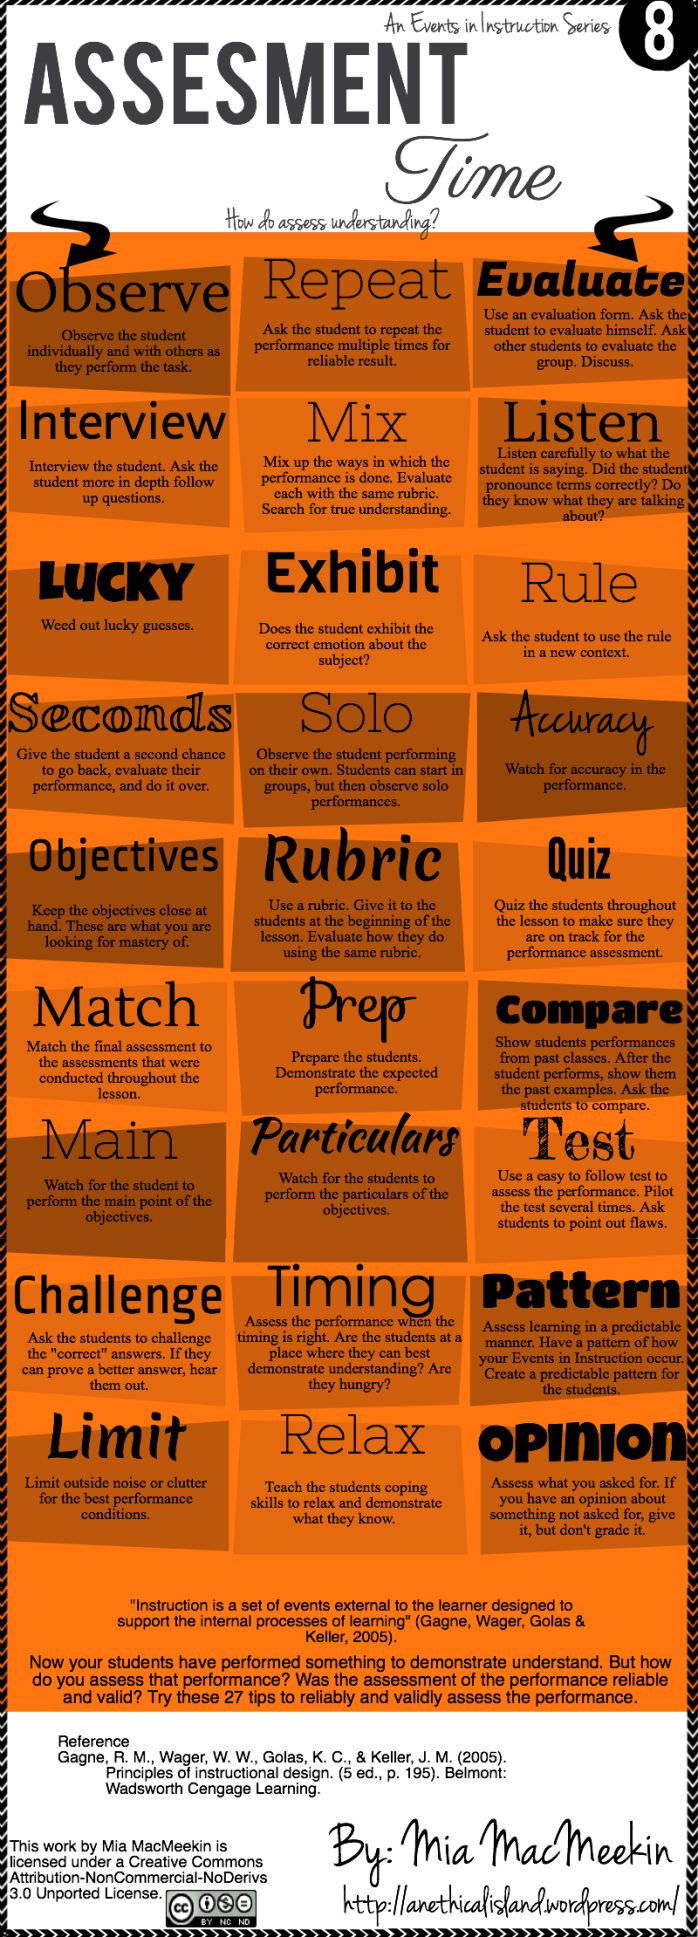 Assessment Time - Ways to Assess Understanding by Mia MacMeekin I wouldn't mind having this in a binder to refer to every now and then.